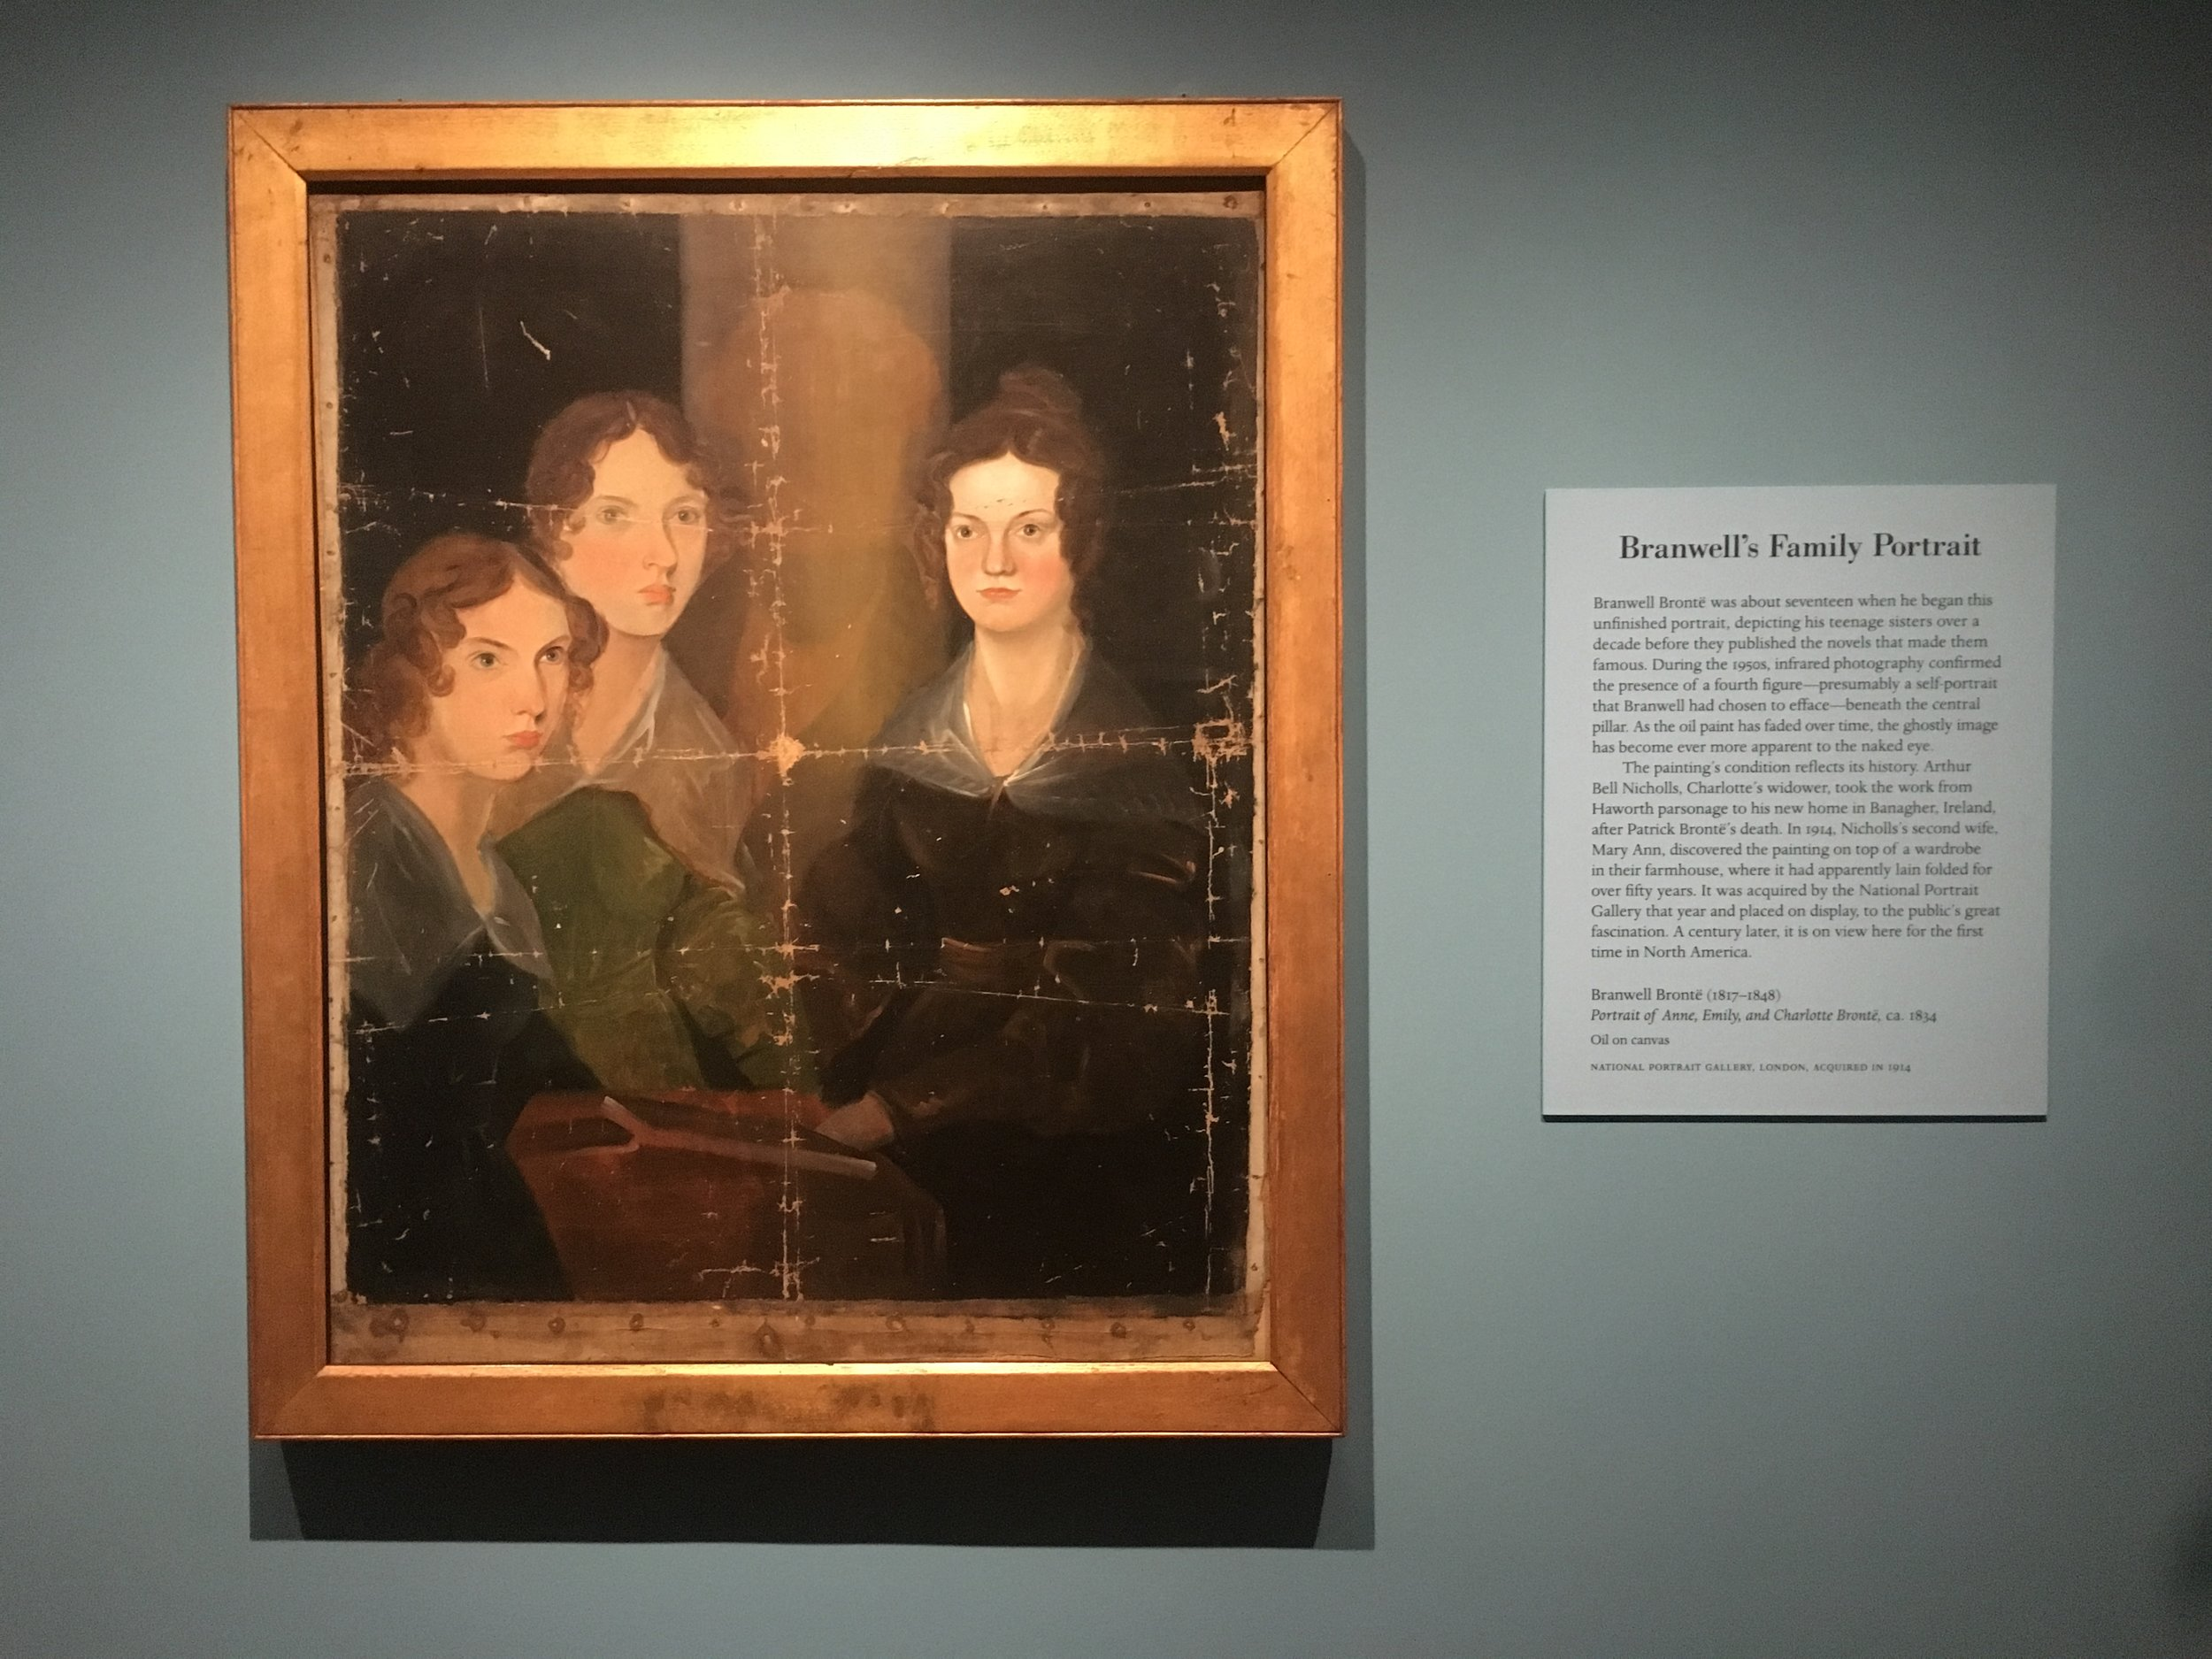 Branwell's Family Portrait. From left to right: Anne, Emily and Charlotte Brontë